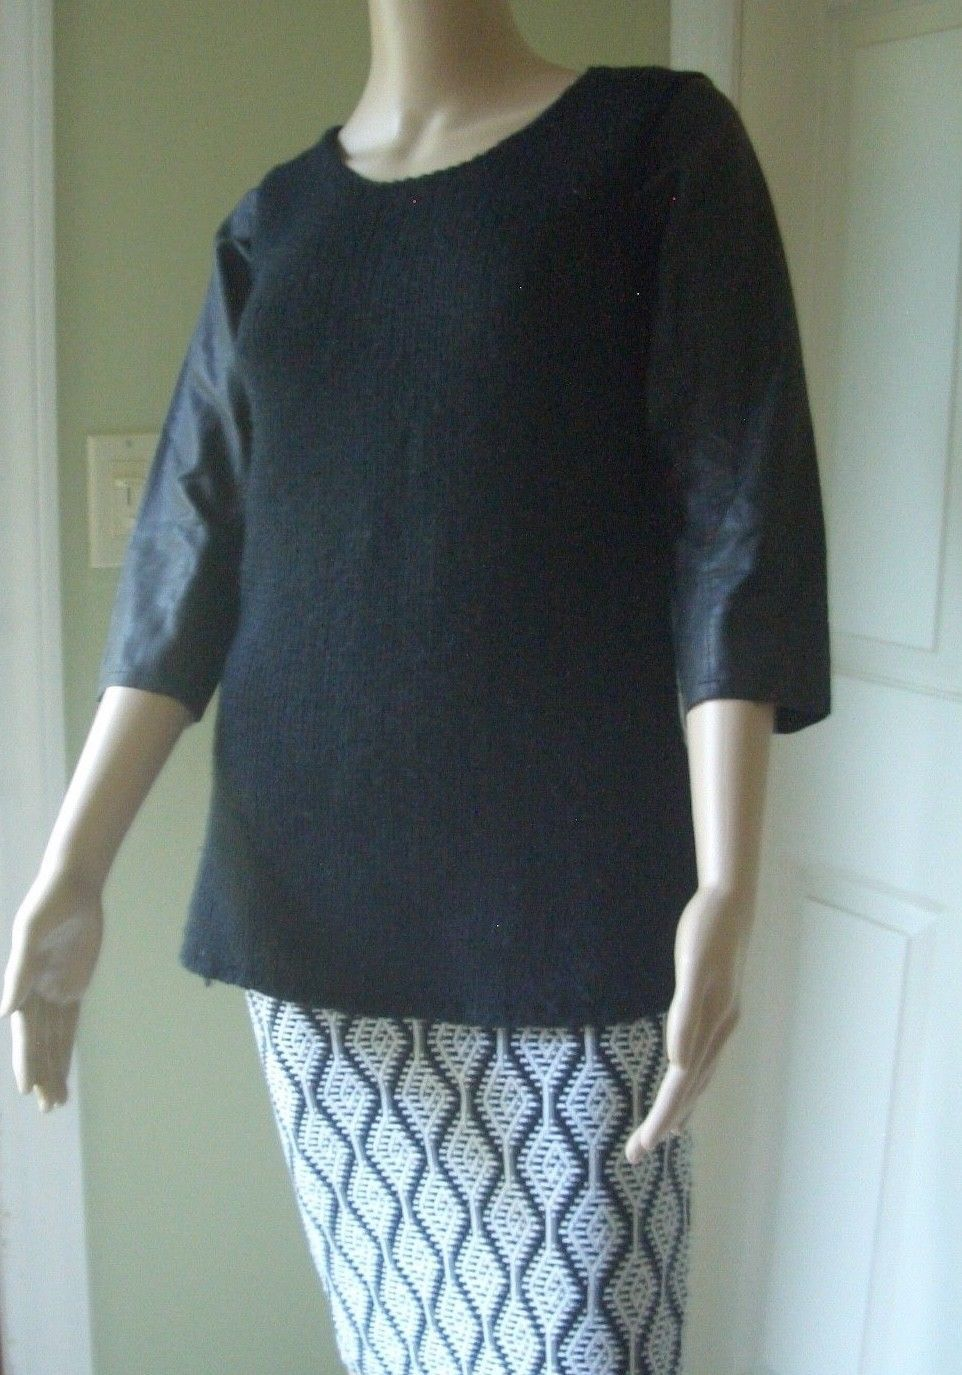 f8ad3852e9b 12.00 ❤ Zara Black Faux Leather Sleeve Knit Sweater Tunic Top S ❤ #leather